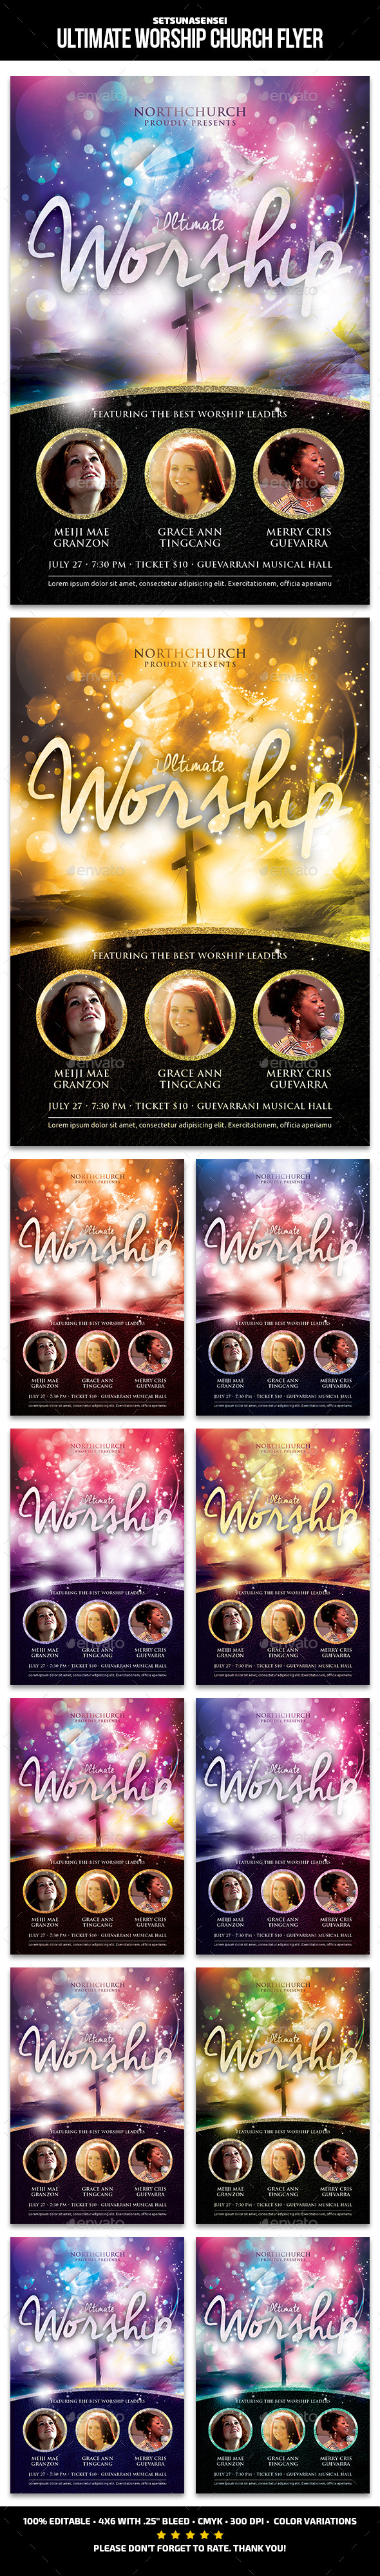 Ultimate Worship Church Flyer - Church Flyers